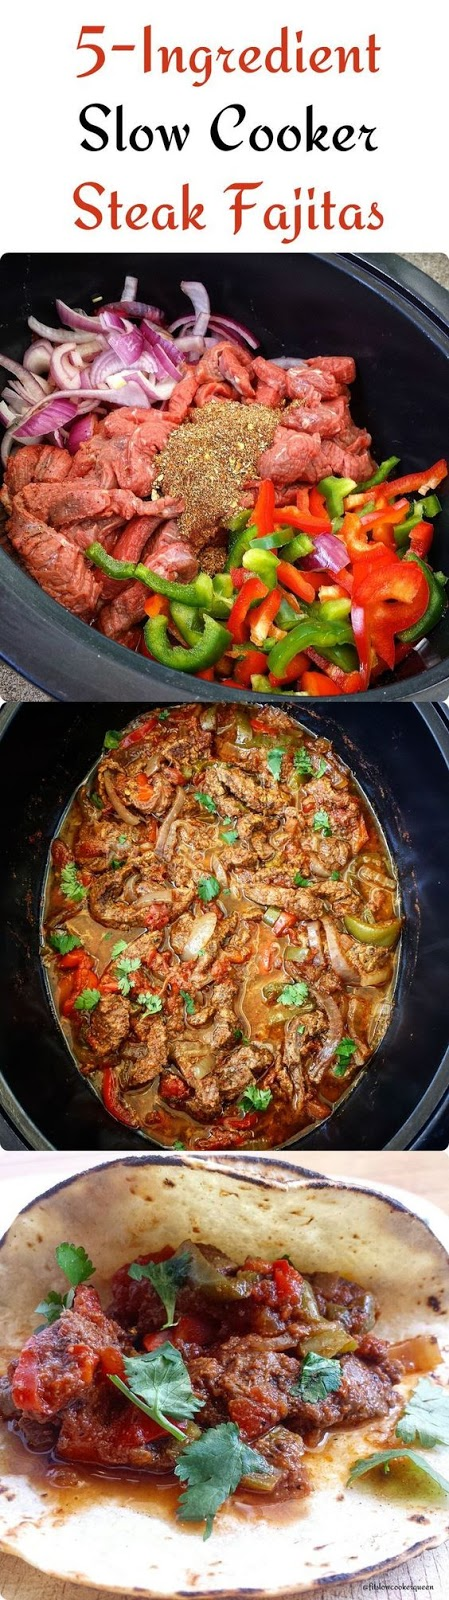 5-INGREDIENT SLOW COOKER STEAK FAJITAS    #DESSERTS #HEALTHYFOOD #EASYRECIPES #DINNER #LAUCH #DELICIOUS #EASY #HOLIDAYS #RECIPE #SPECIALDIET #WORLDCUISINE #CAKE #APPETIZERS #HEALTHYRECIPES #DRINKS #COOKINGMETHOD #ITALIANRECIPES #MEAT #VEGANRECIPES #COOKIES #PASTA #FRUIT #SALAD #SOUPAPPETIZERS #NONALCOHOLICDRINKS #MEALPLANNING #VEGETABLES #SOUP #PASTRY #CHOCOLATE #DAIRY #ALCOHOLICDRINKS #BULGURSALAD #BAKING #SNACKS #BEEFRECIPES #MEATAPPETIZERS #MEXICANRECIPES #BREAD #ASIANRECIPES #SEAFOODAPPETIZERS #MUFFINS #BREAKFASTANDBRUNCH #CONDIMENTS #CUPCAKES #CHEESE #CHICKENRECIPES #PIE #COFFEE #NOBAKEDESSERTS #HEALTHYSNACKS #SEAFOOD #GRAIN #LUNCHESDINNERS #MEXICAN #QUICKBREAD #LIQUOR